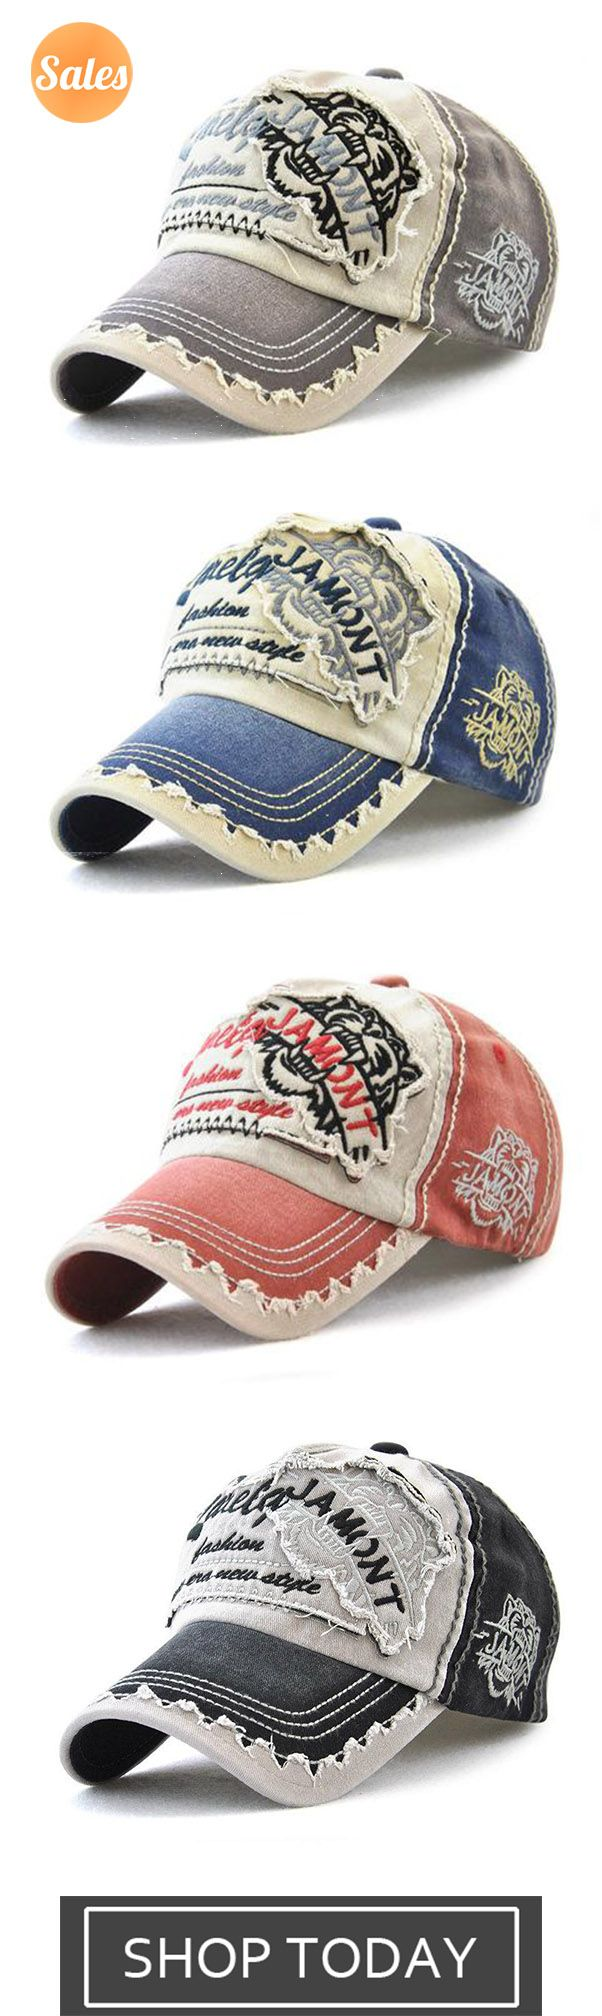 cae313efa065b4 Men Vintage Patch Embroidered Letter Sunshade Hat Baseball Caps in ...